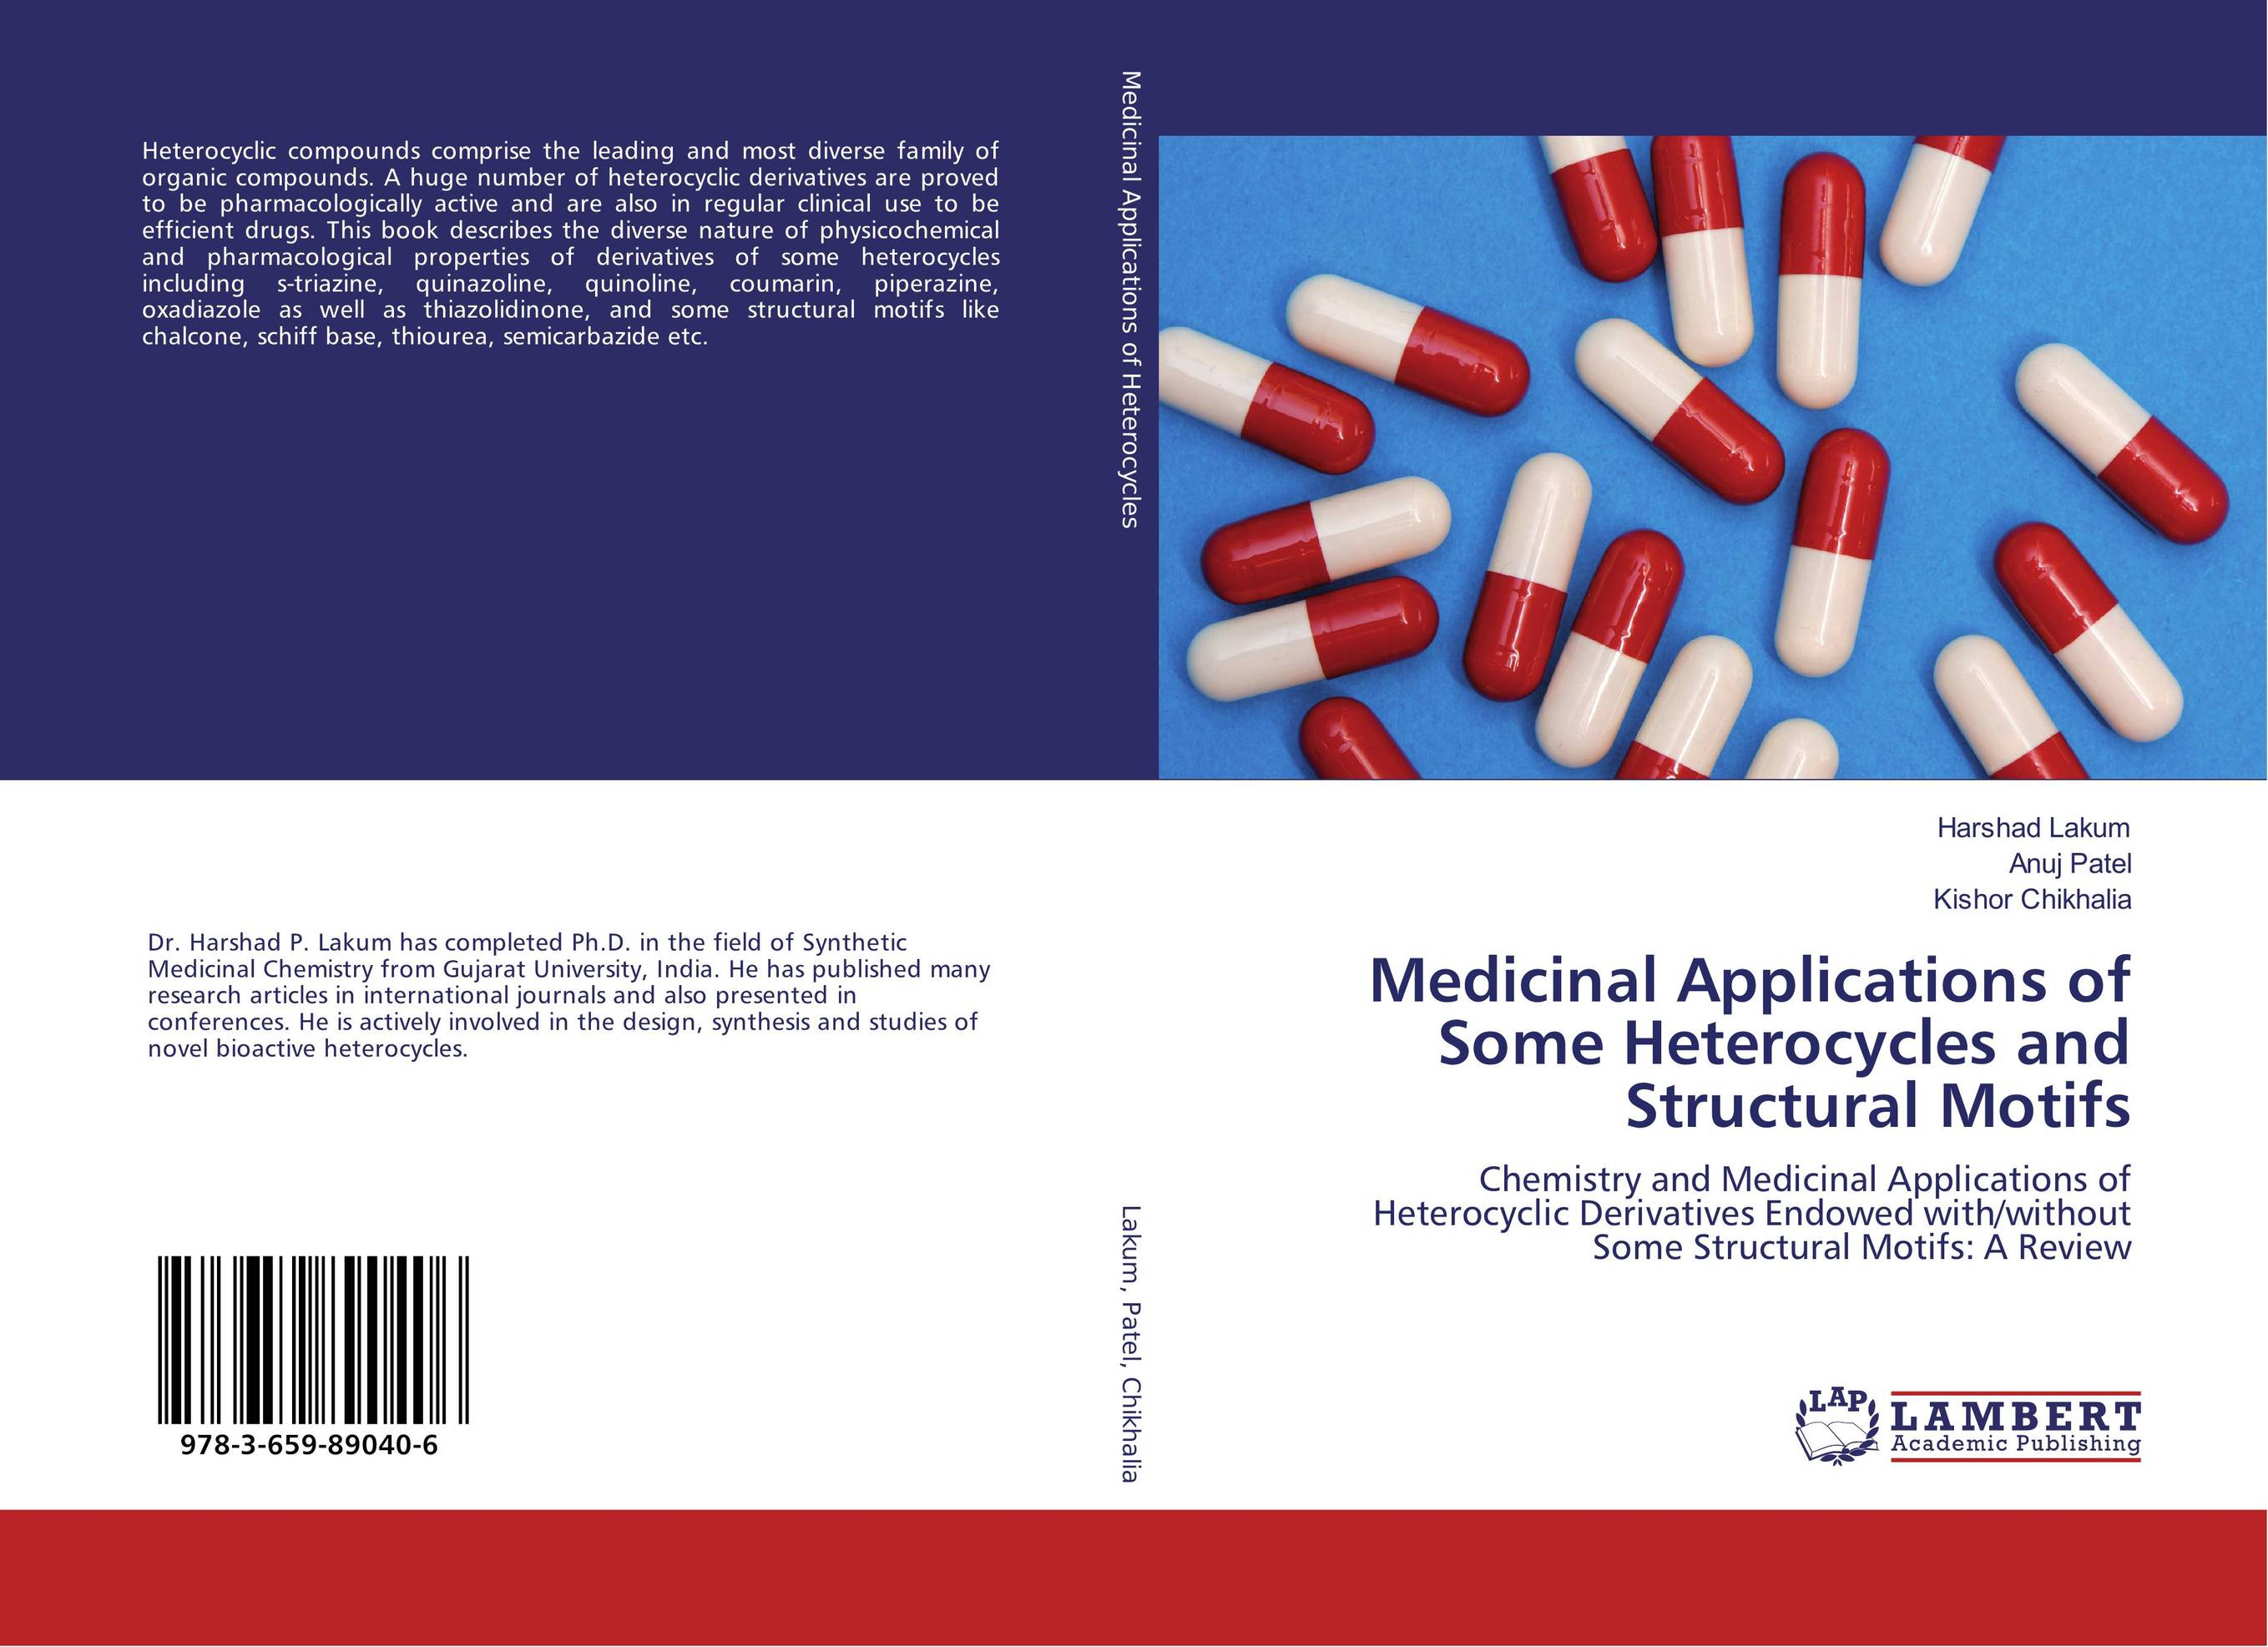 Medicinal Applications of Some Heterocycles and Structural Motifs mcfadden structural analysis of discrete data w ith econometric applications